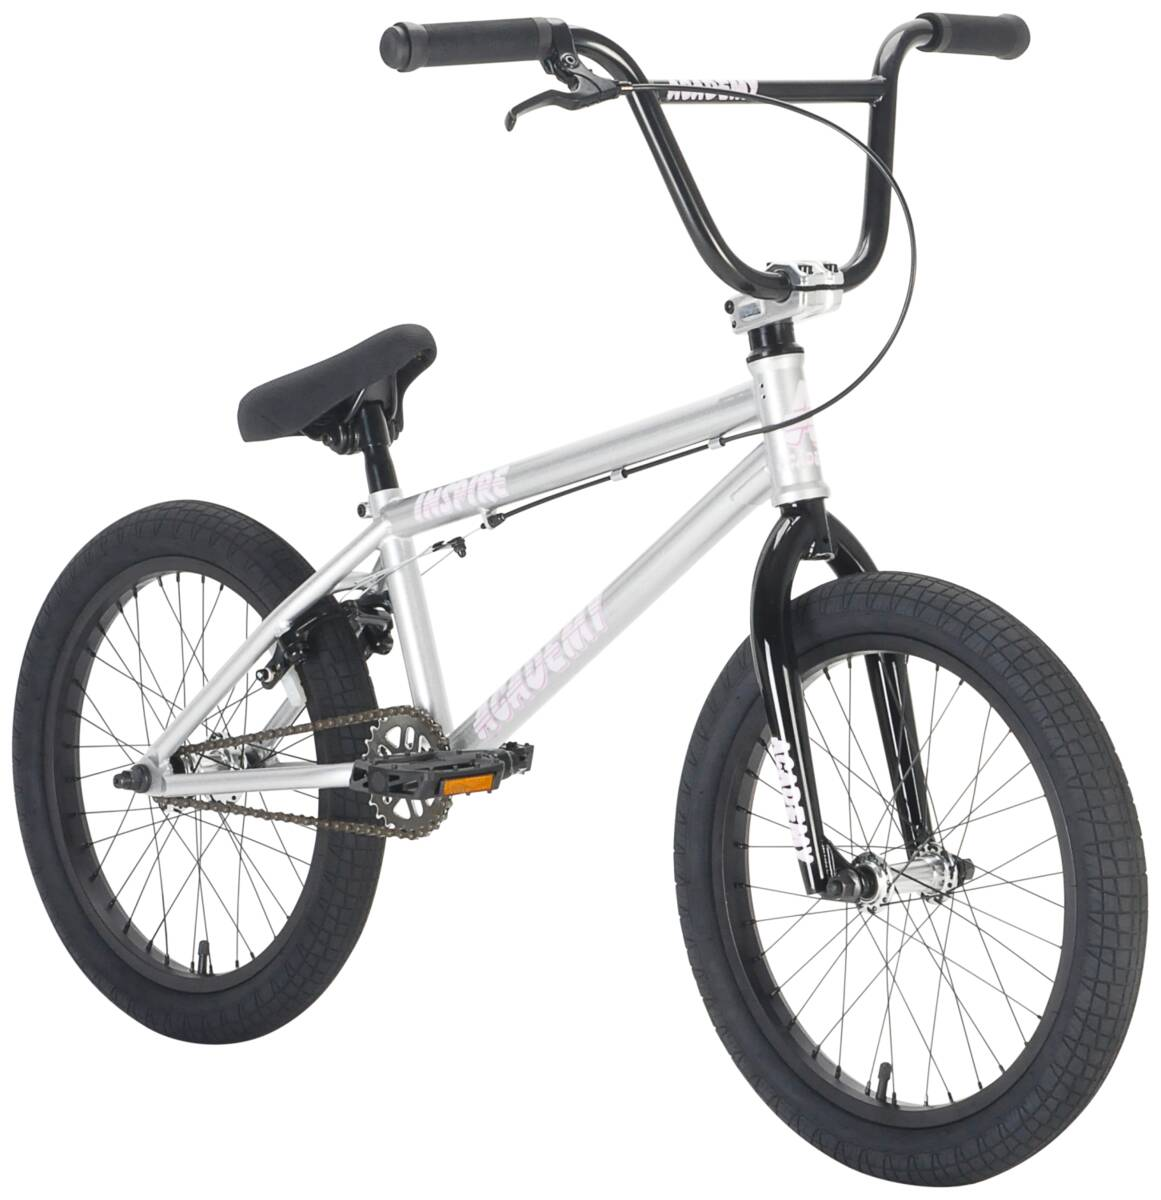 "Academy Inspire 18"" 2021 BMX Freestyle Bike - Silver/Black"